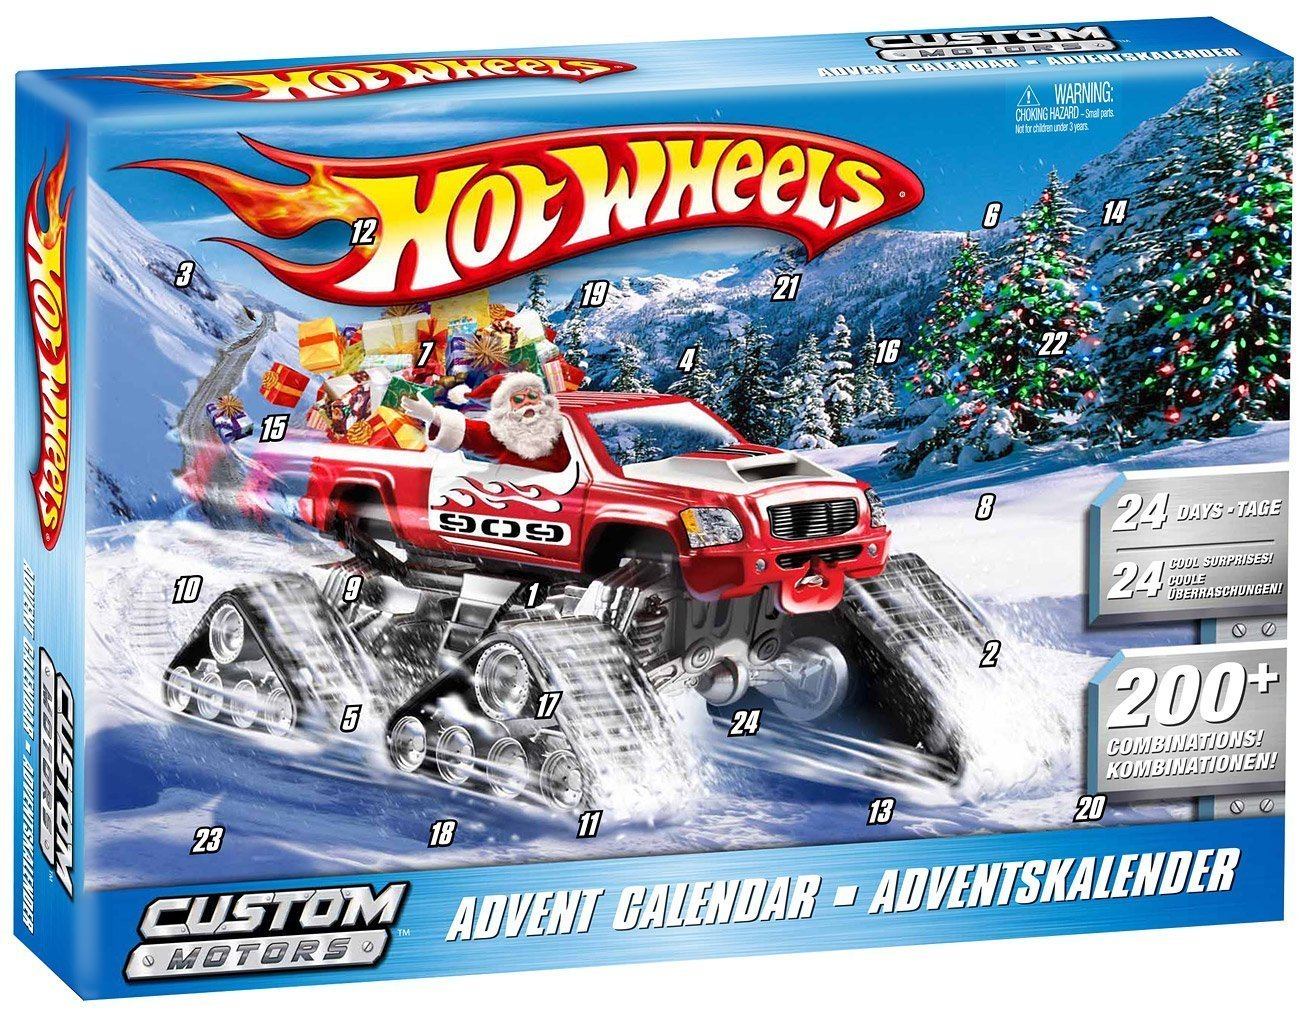 hot wheels adventskalender 2010 monstertruck. Black Bedroom Furniture Sets. Home Design Ideas